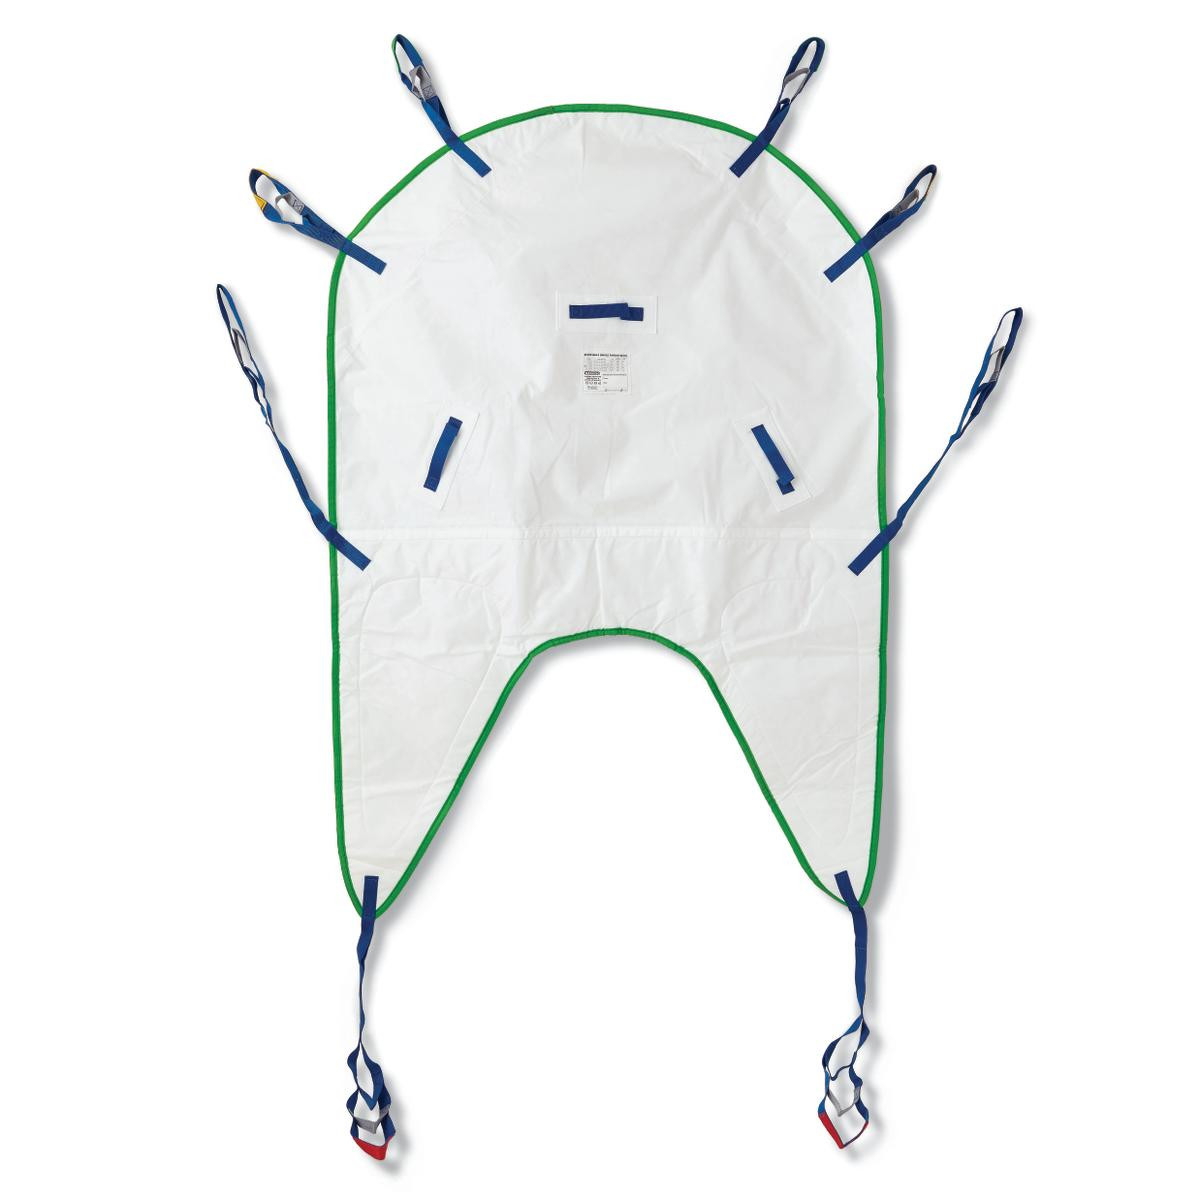 U-Shaped Disposable Sling with Head Support (10 Pack) - Large